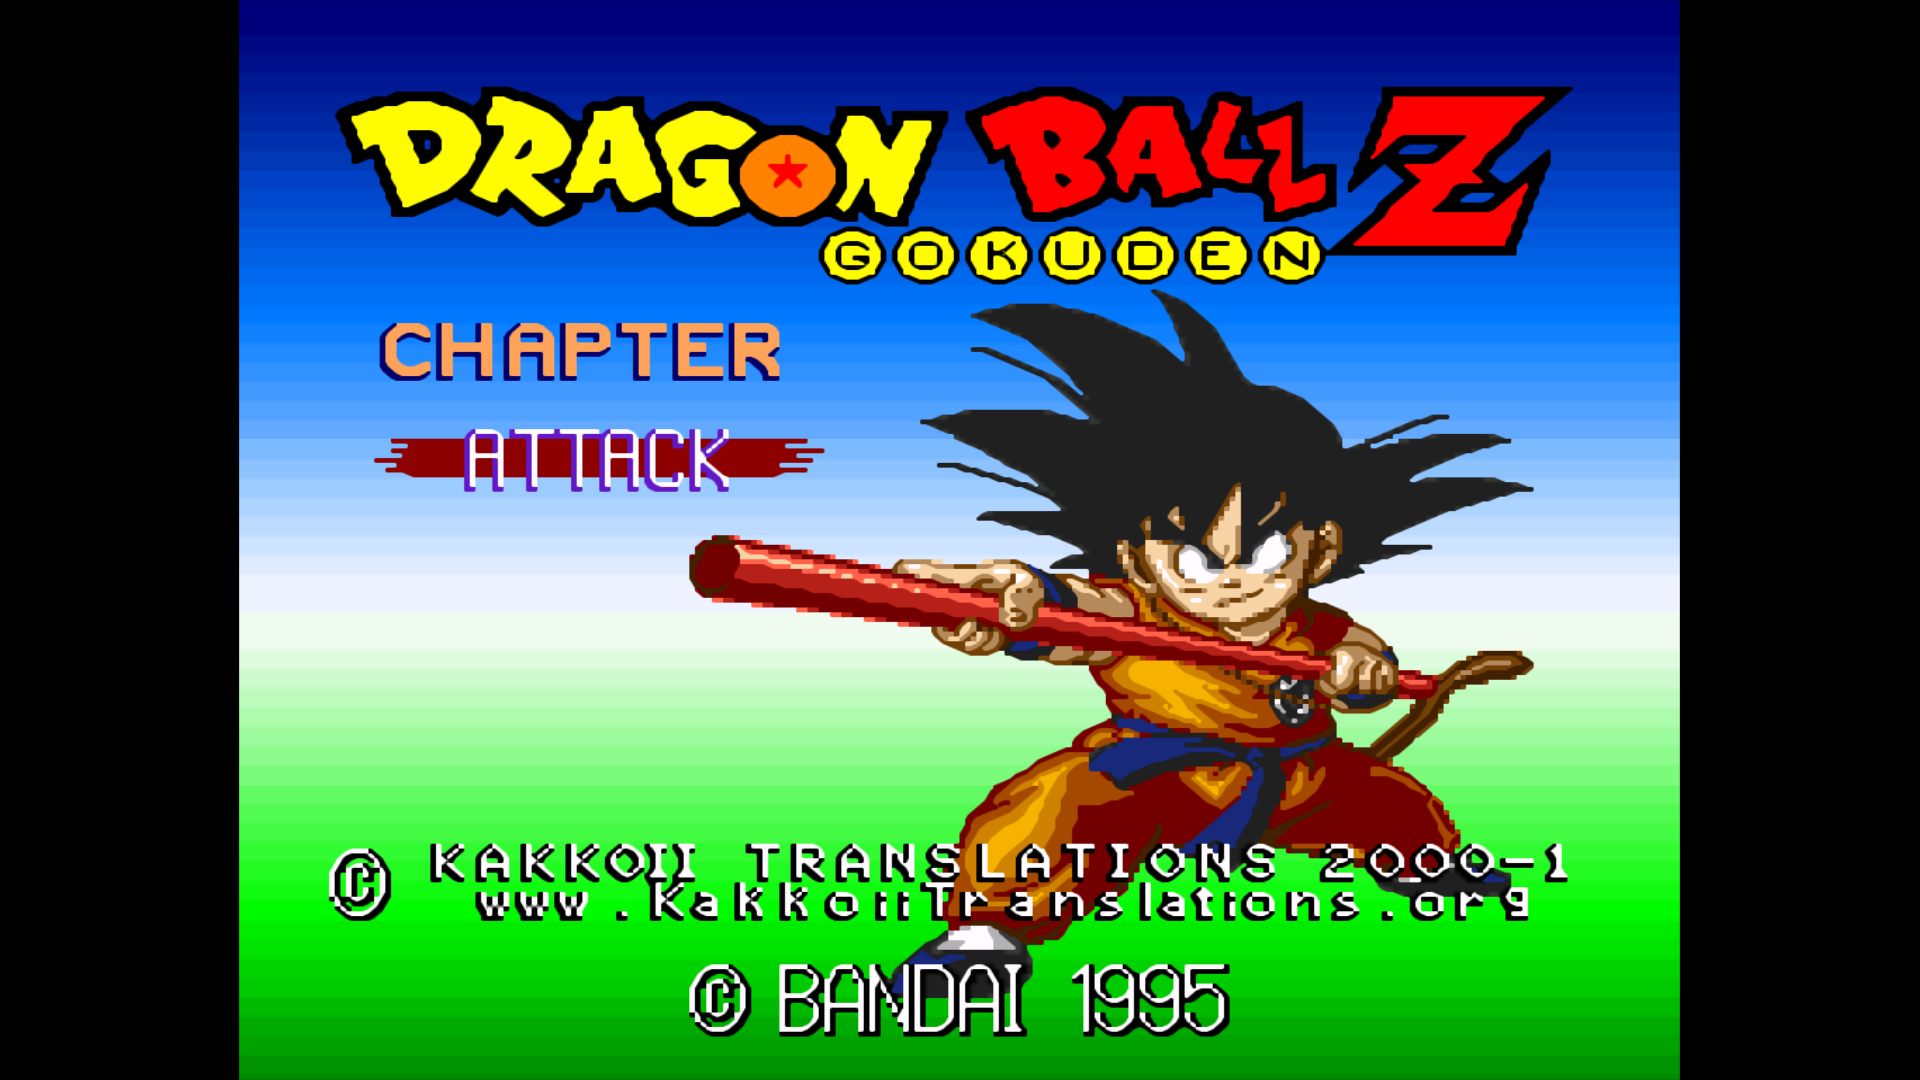 Dragon Ball Z - Super Gokuu Den - Totsugeki Hen (Japan) [En by Kakkoii v0.313] (~Dragon Ball Z - The Legend of Goku 1) (Incomplete) game